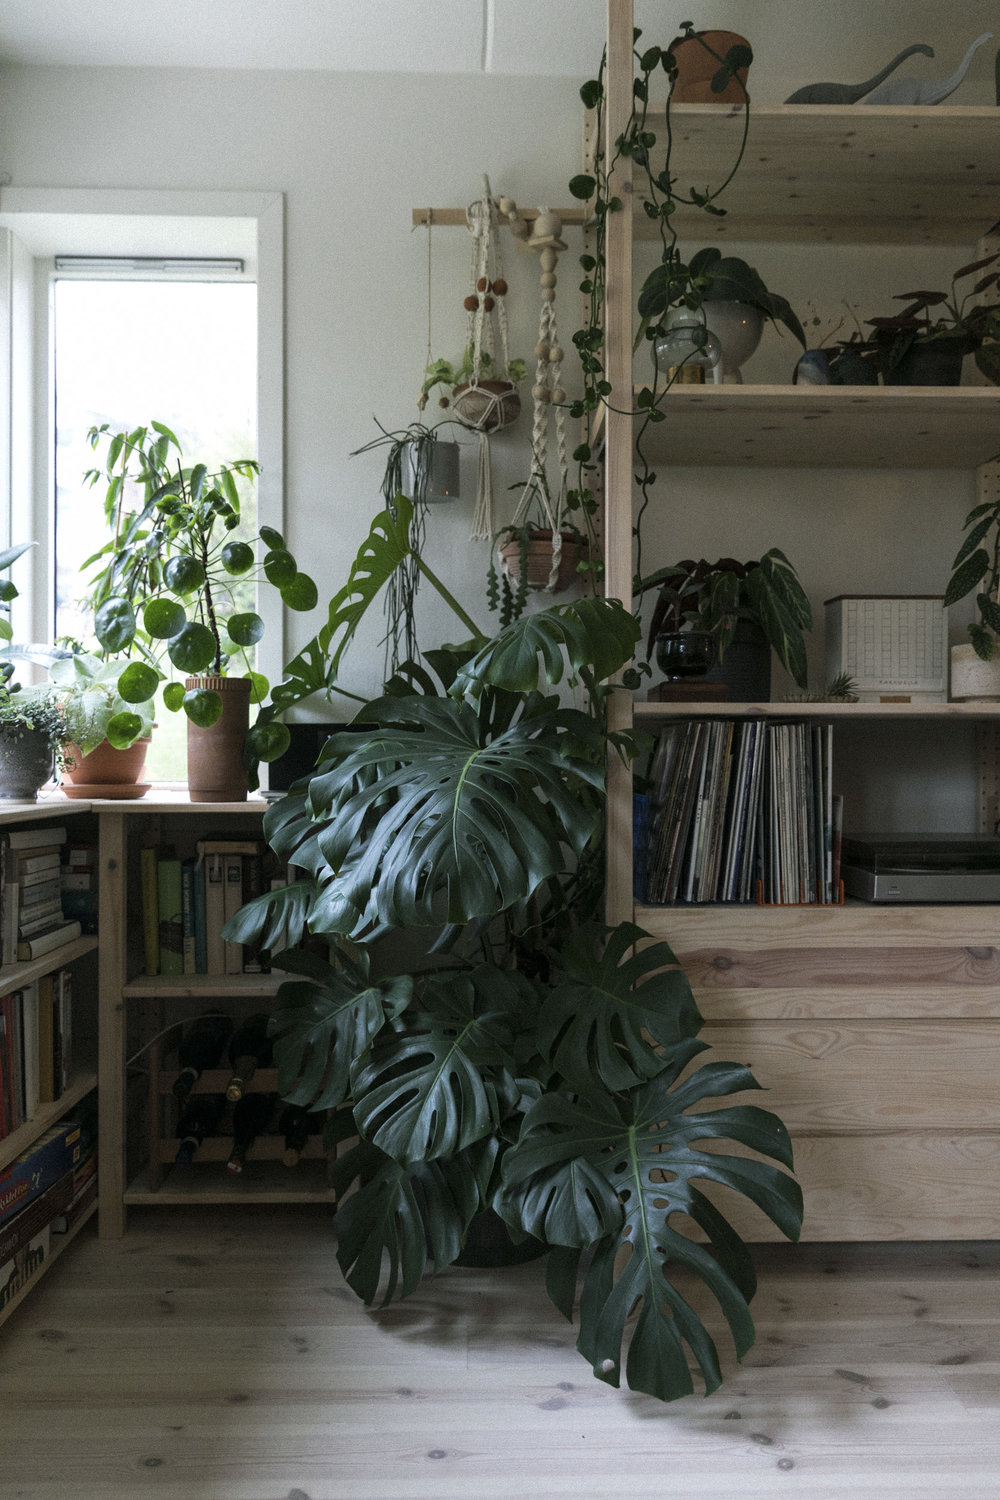 Plantemagasinet GRO Jenny Leite-Vikra Monstera